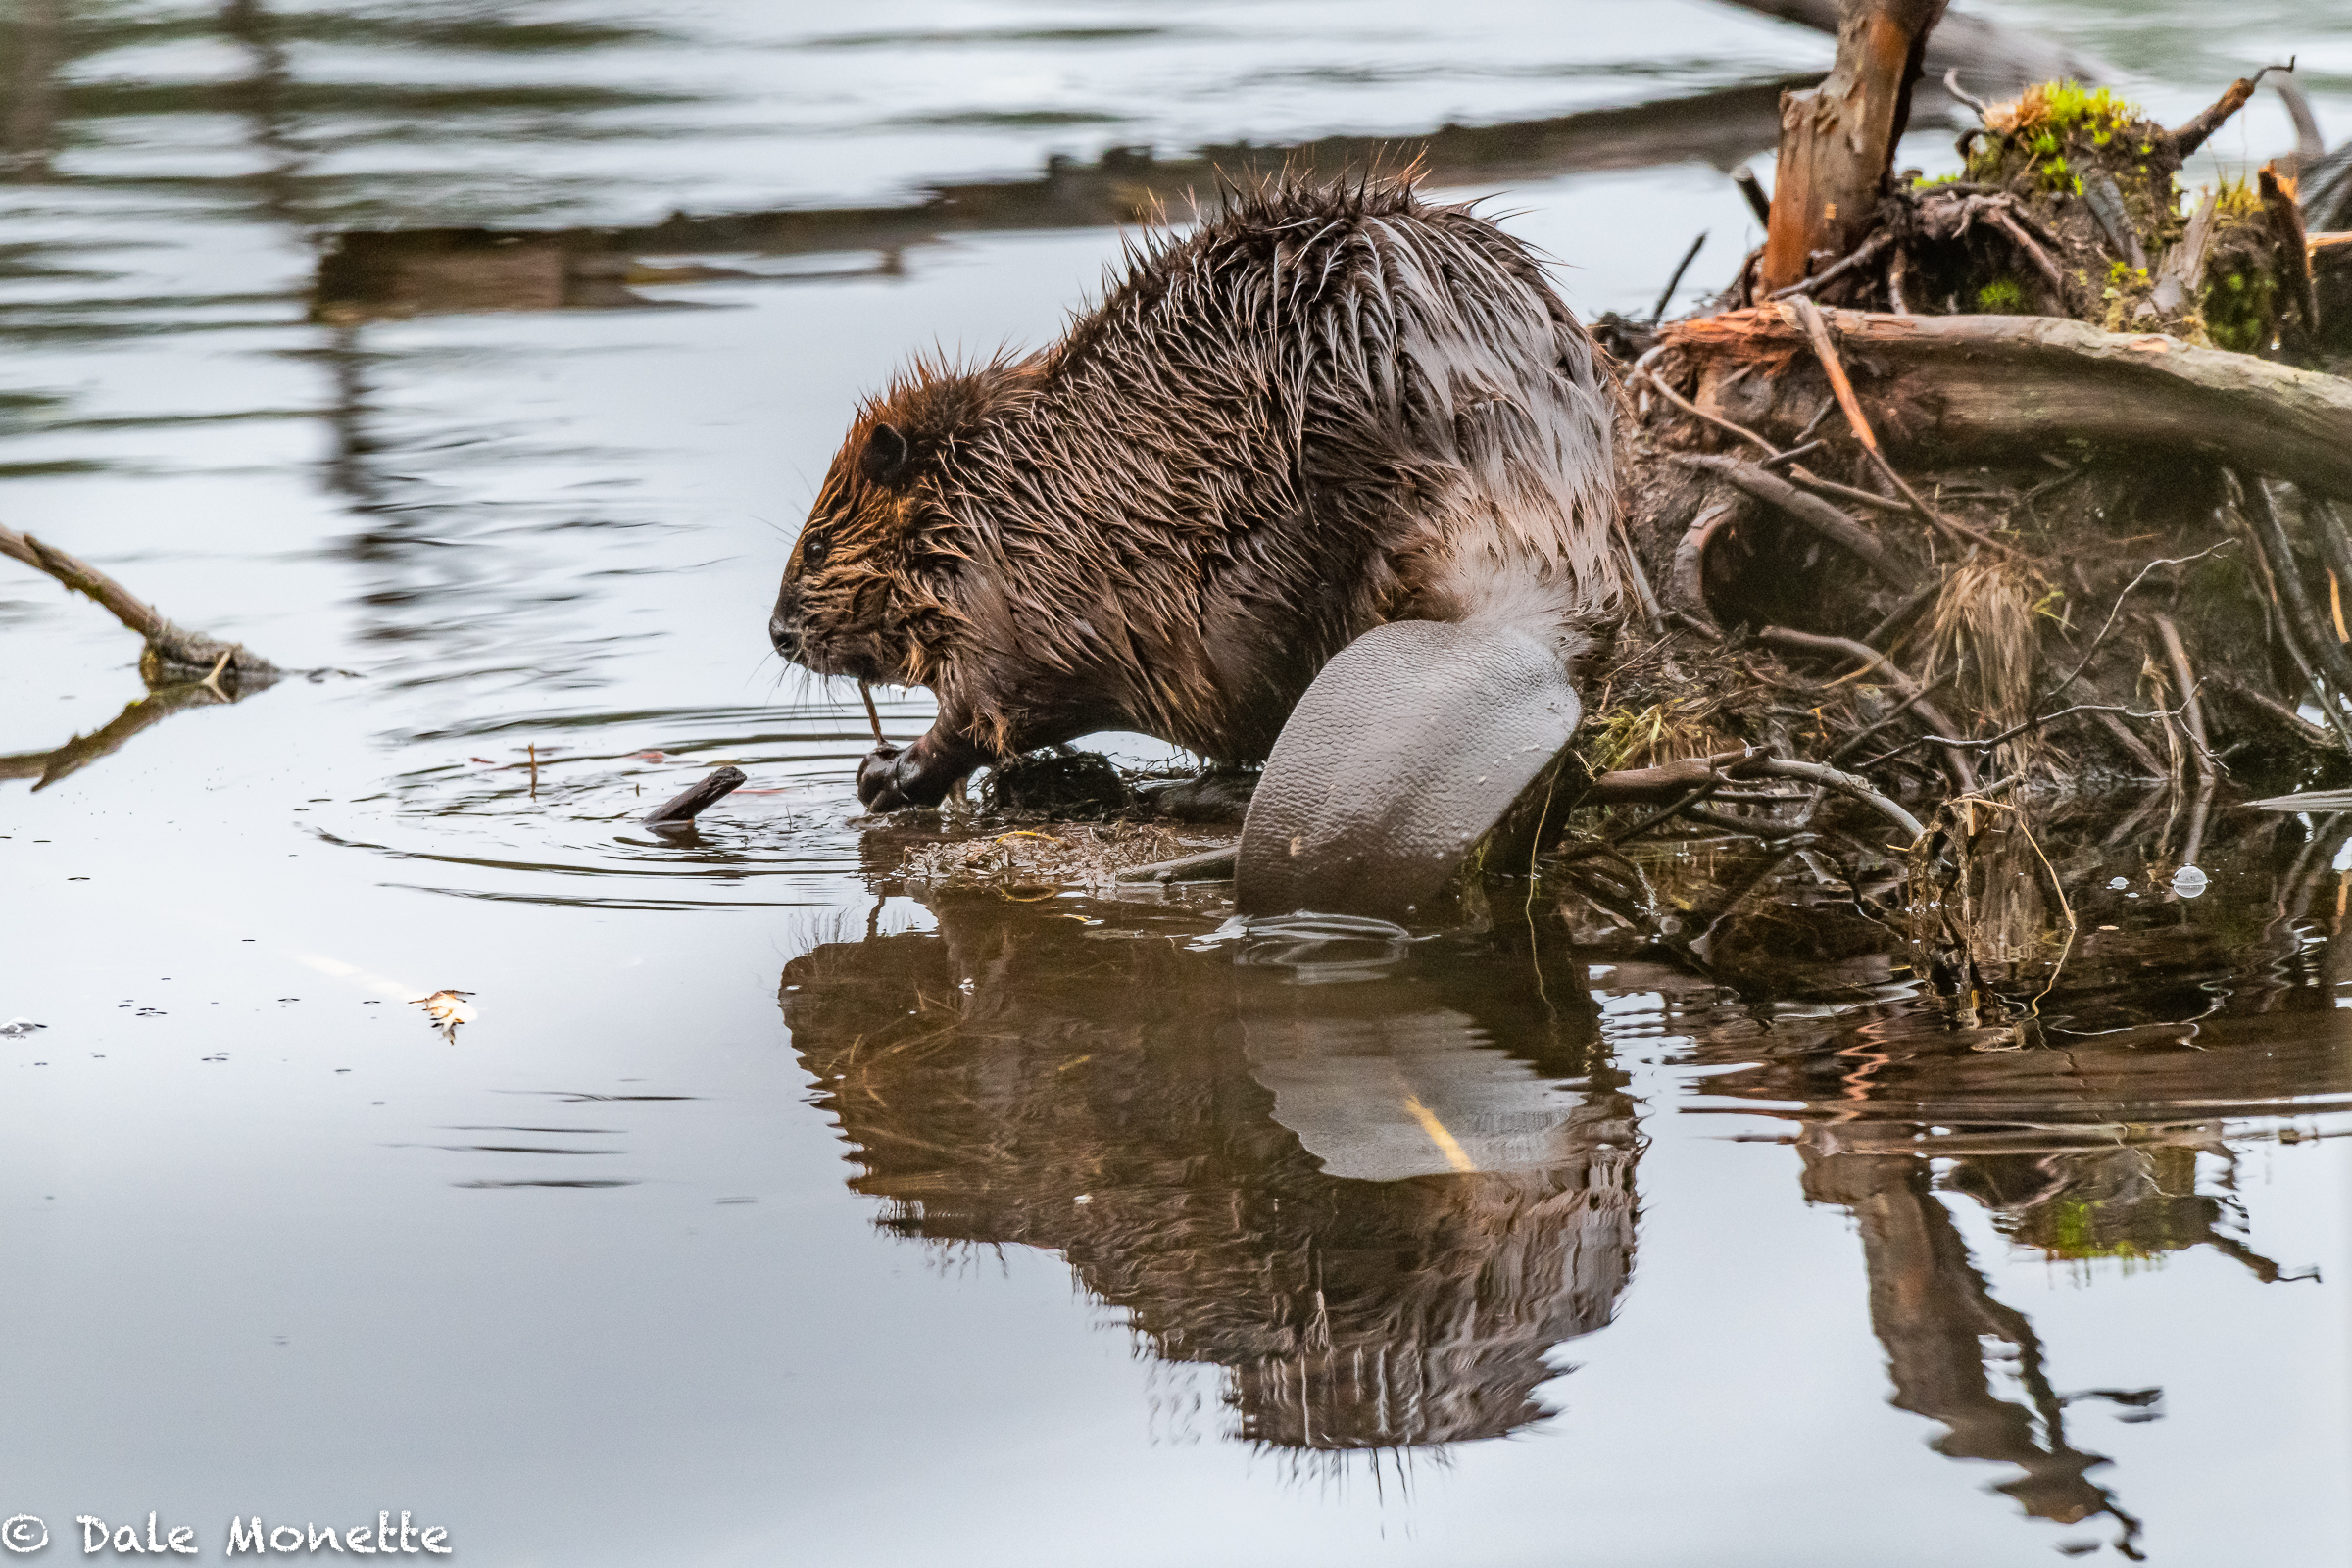 For some reason beavers are liking this spot to stop and feed for a few minutes. Here is a great shot of what a beaver tail looks like if you've never seen one close.